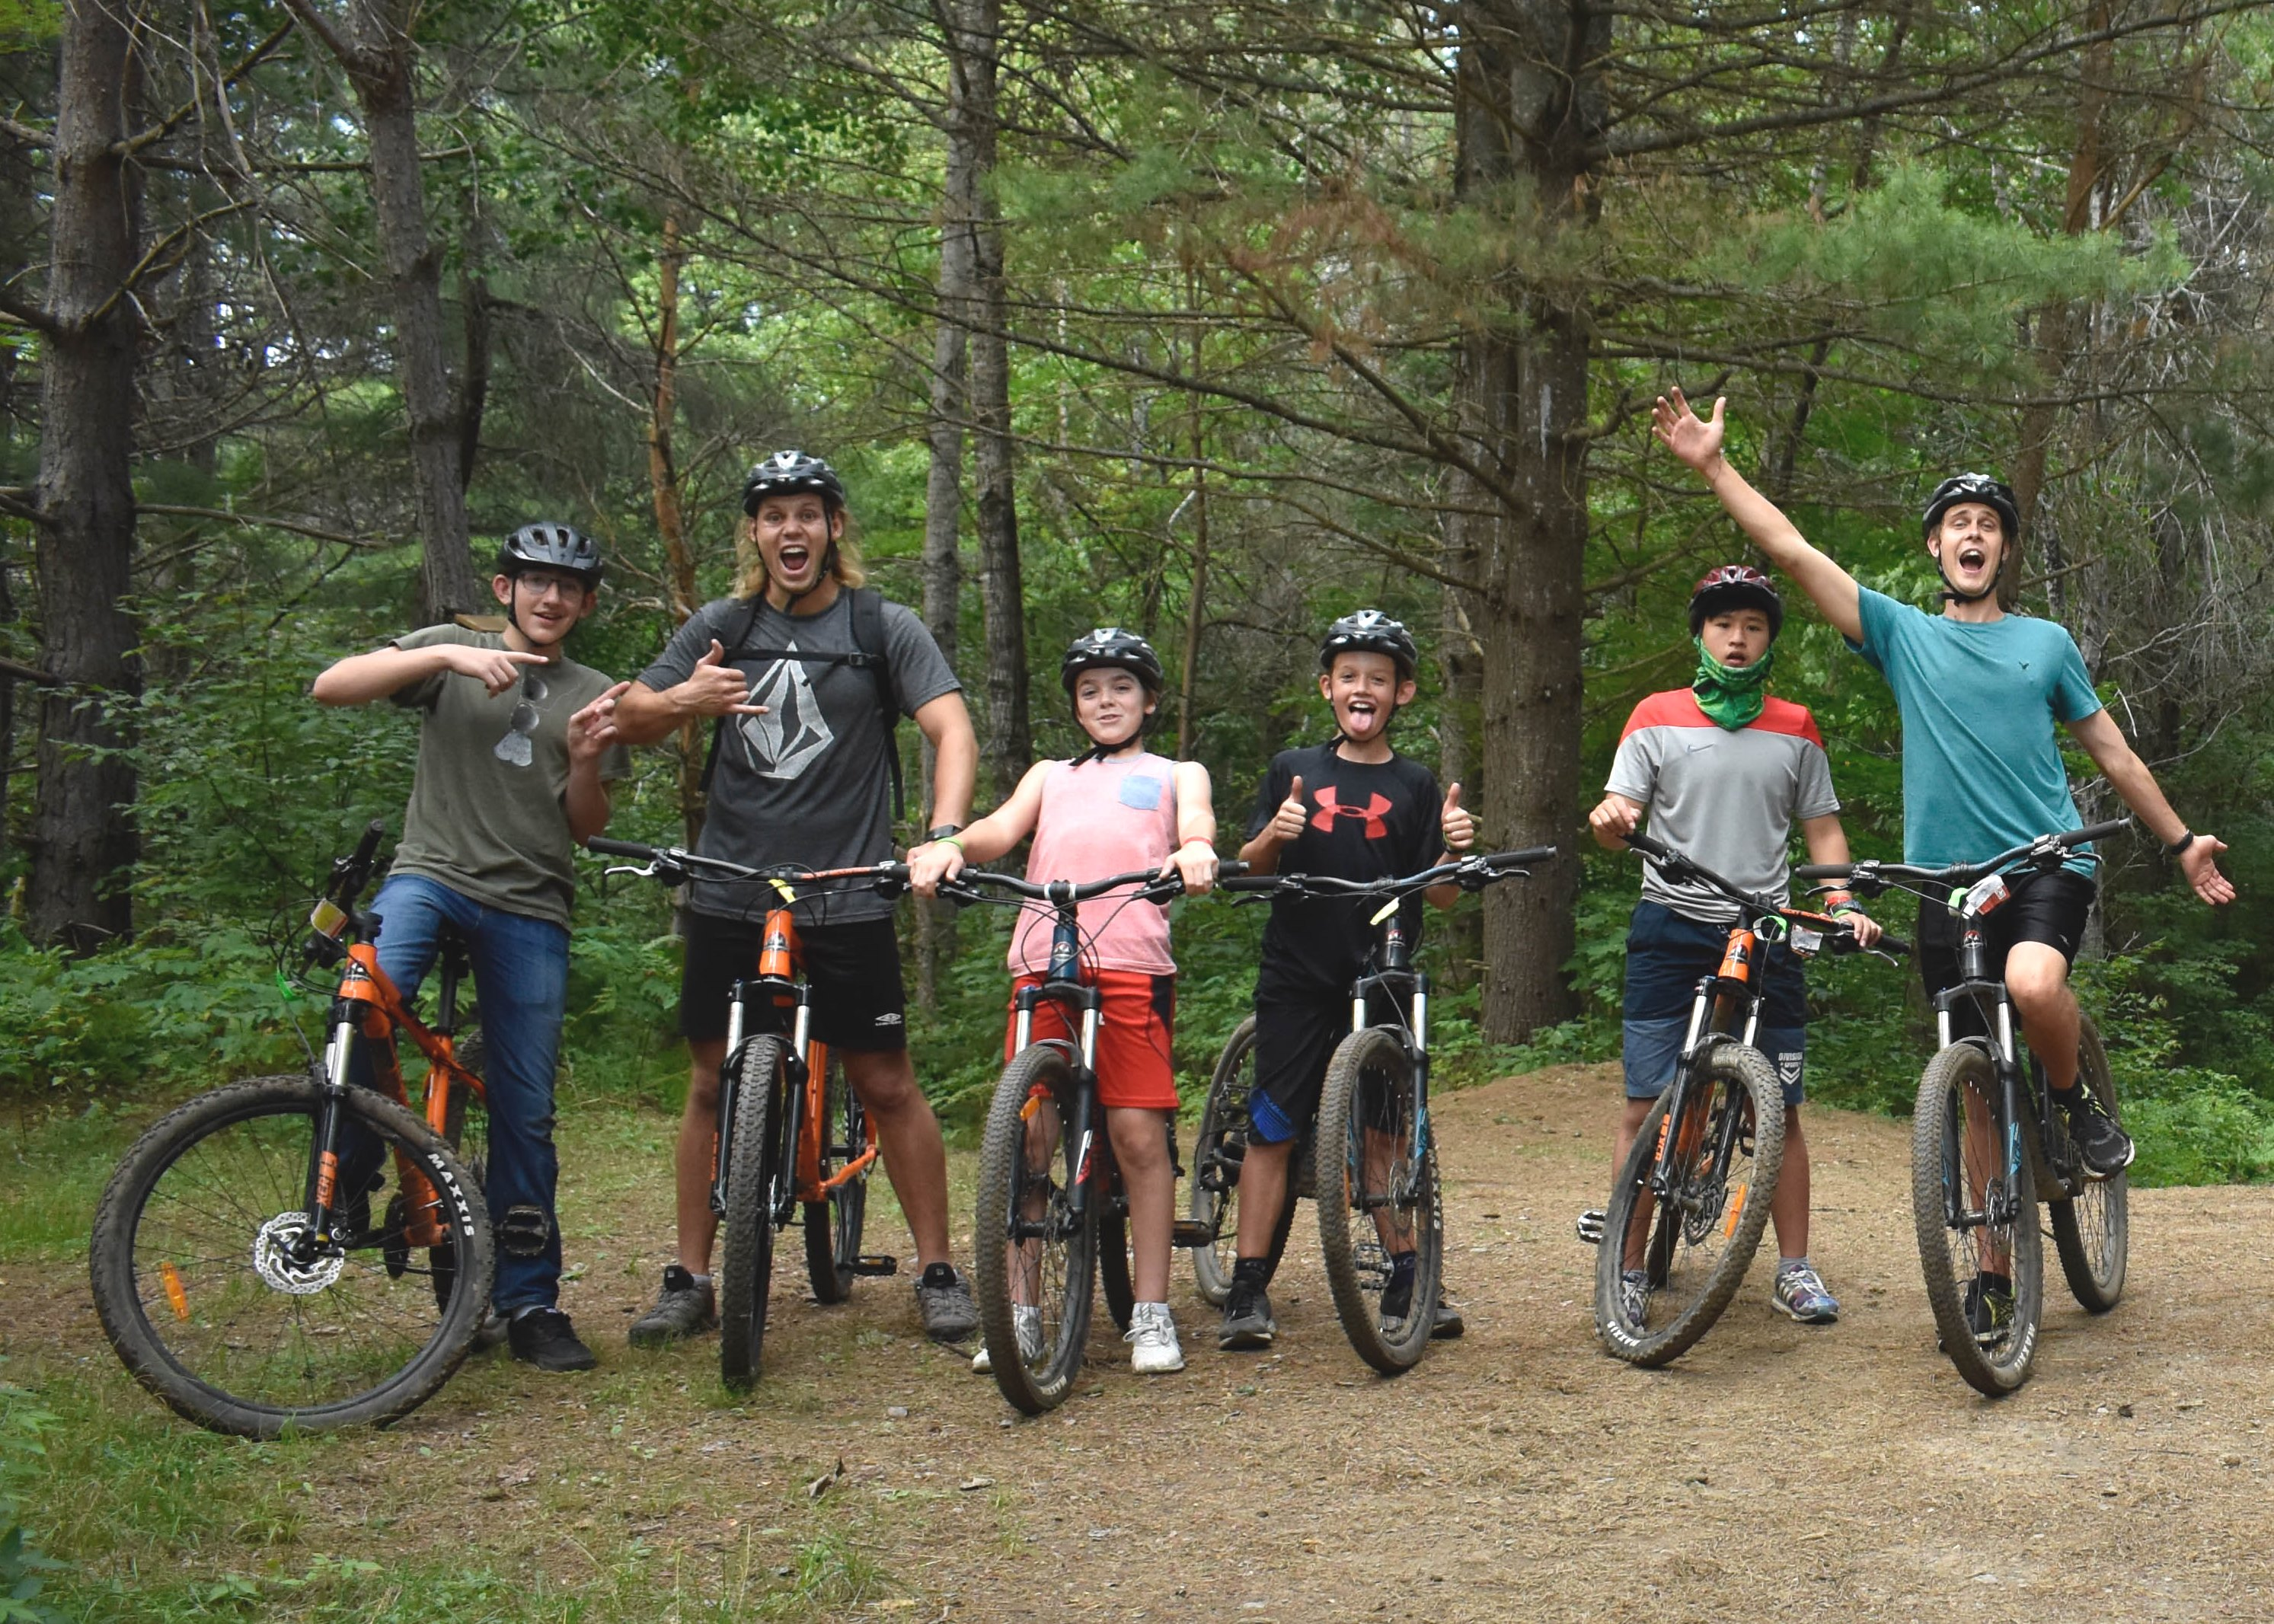 Campers mountain biking in woods at christian adventure summer camp in Haliburton, Ontario